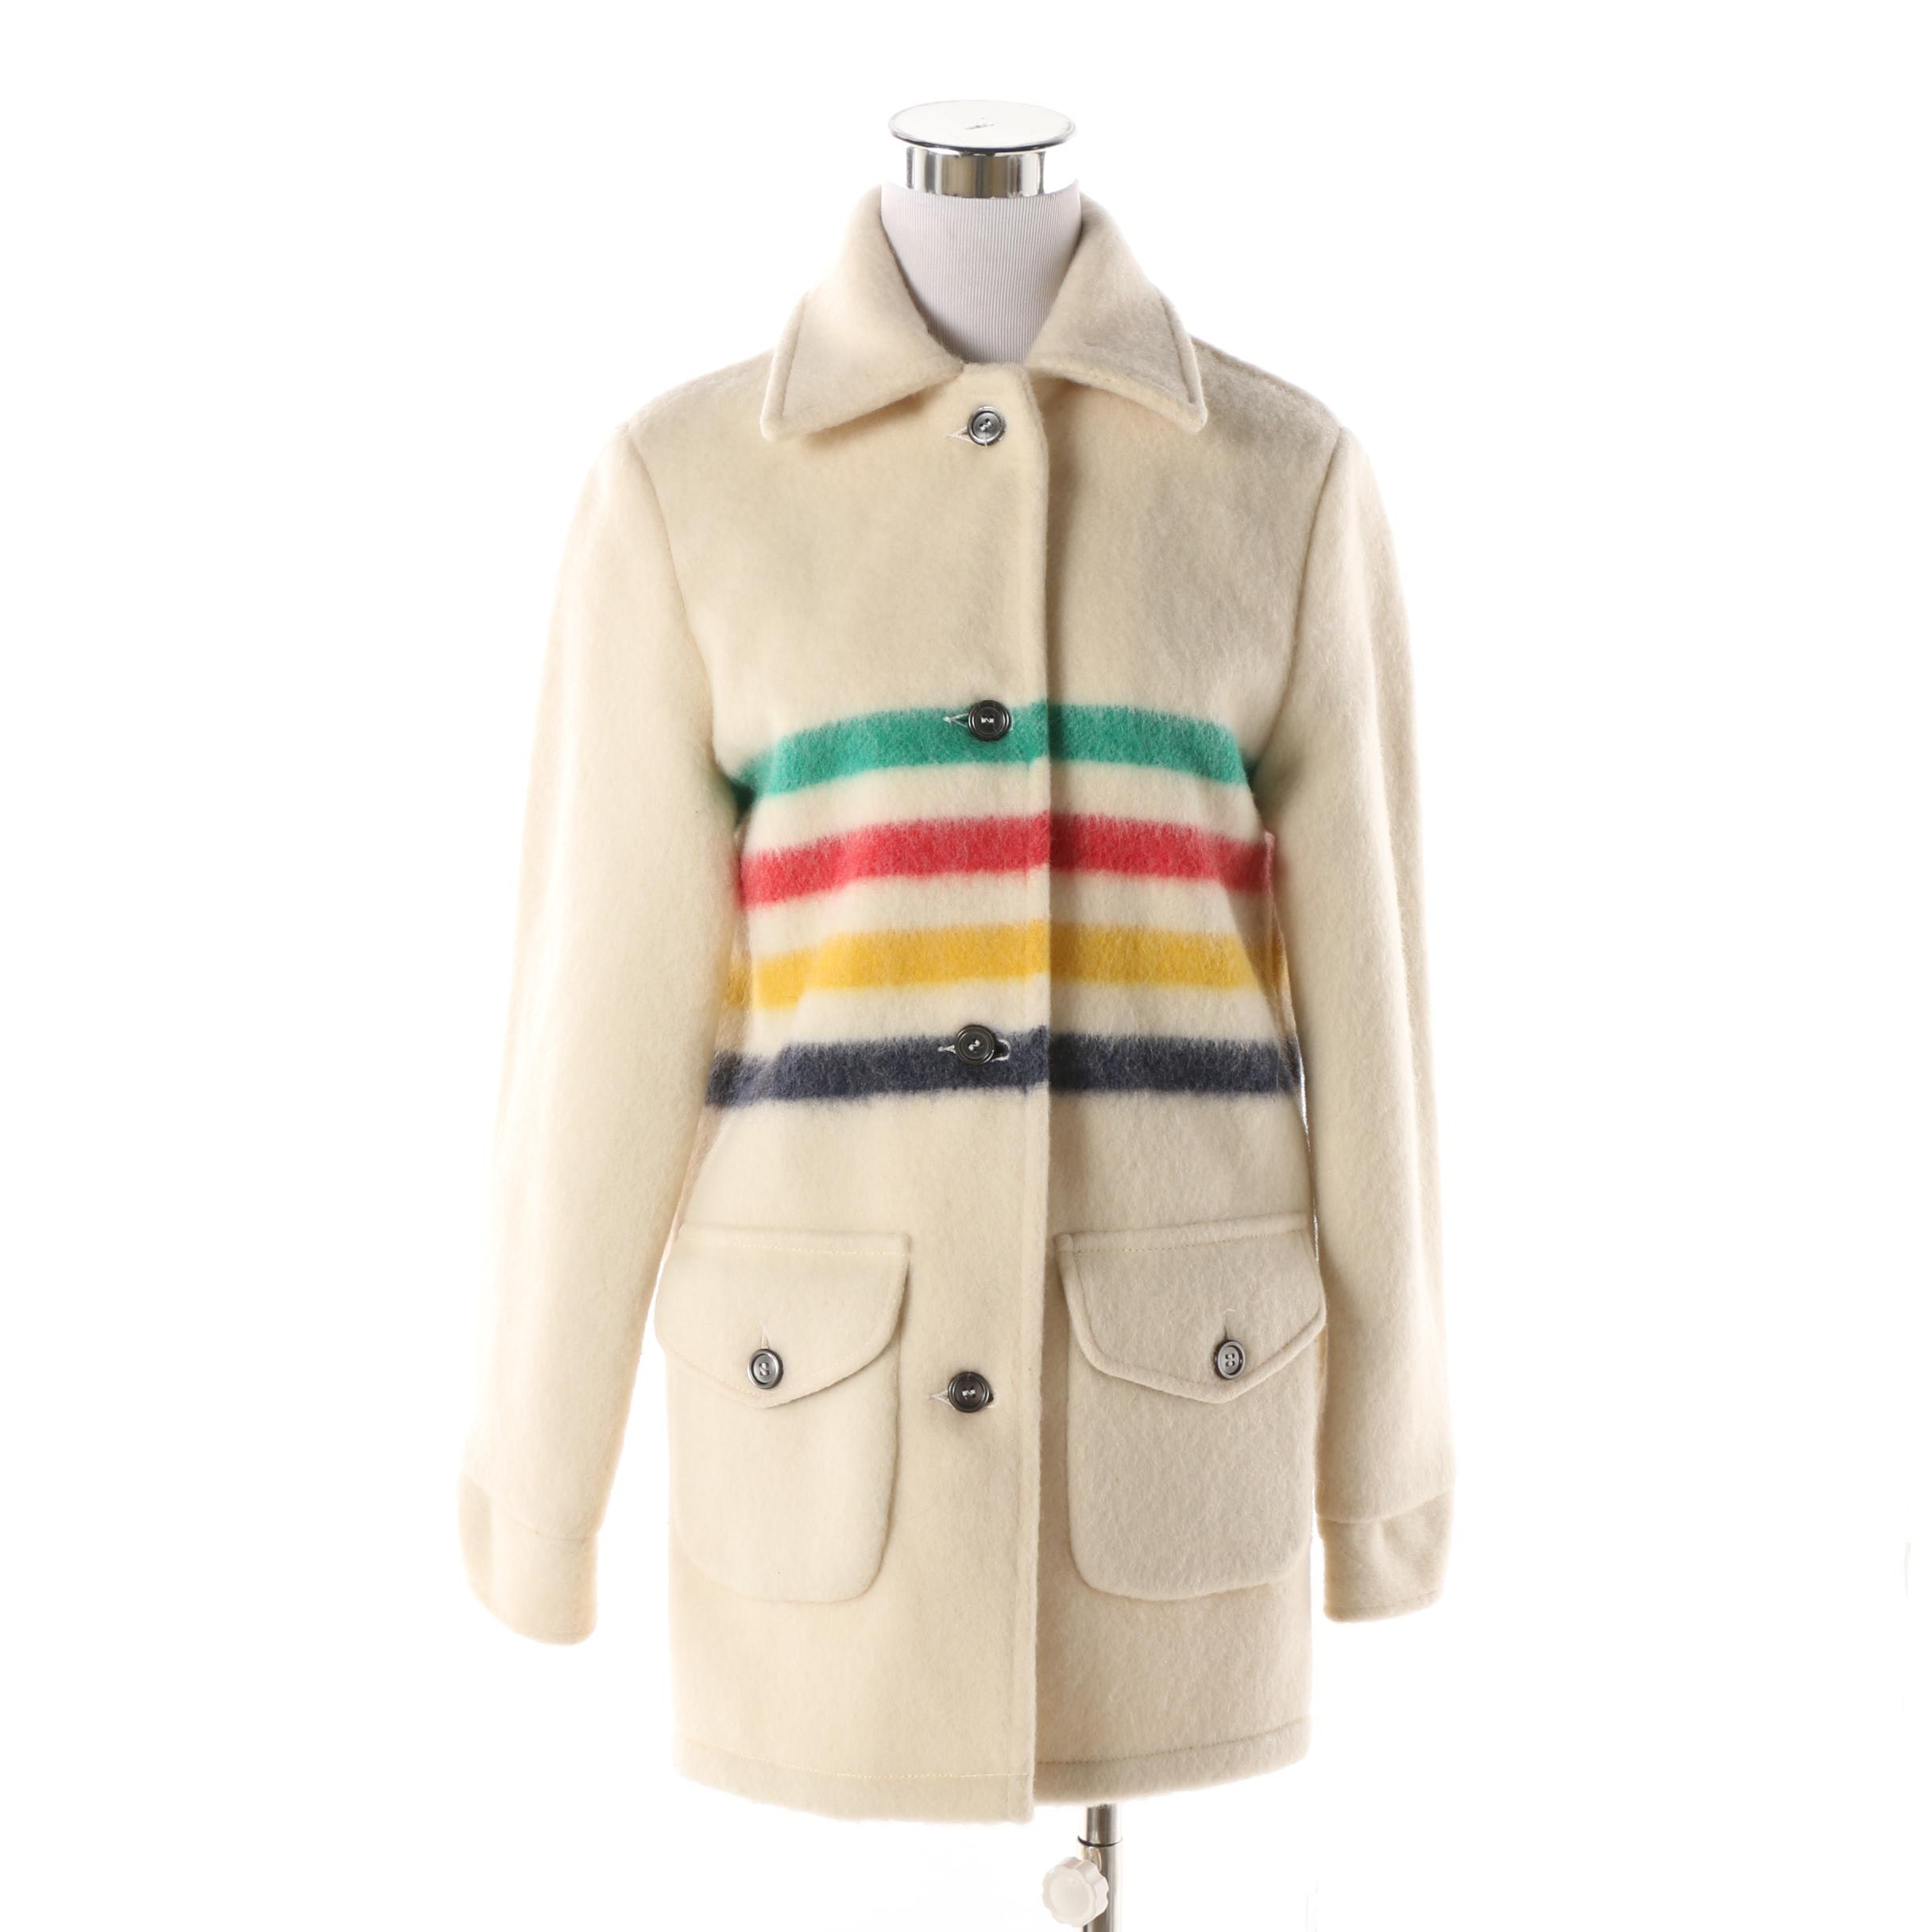 Women's Hudson's Bay Company Cream Wool Jacket with Multicolored Stripe Accents